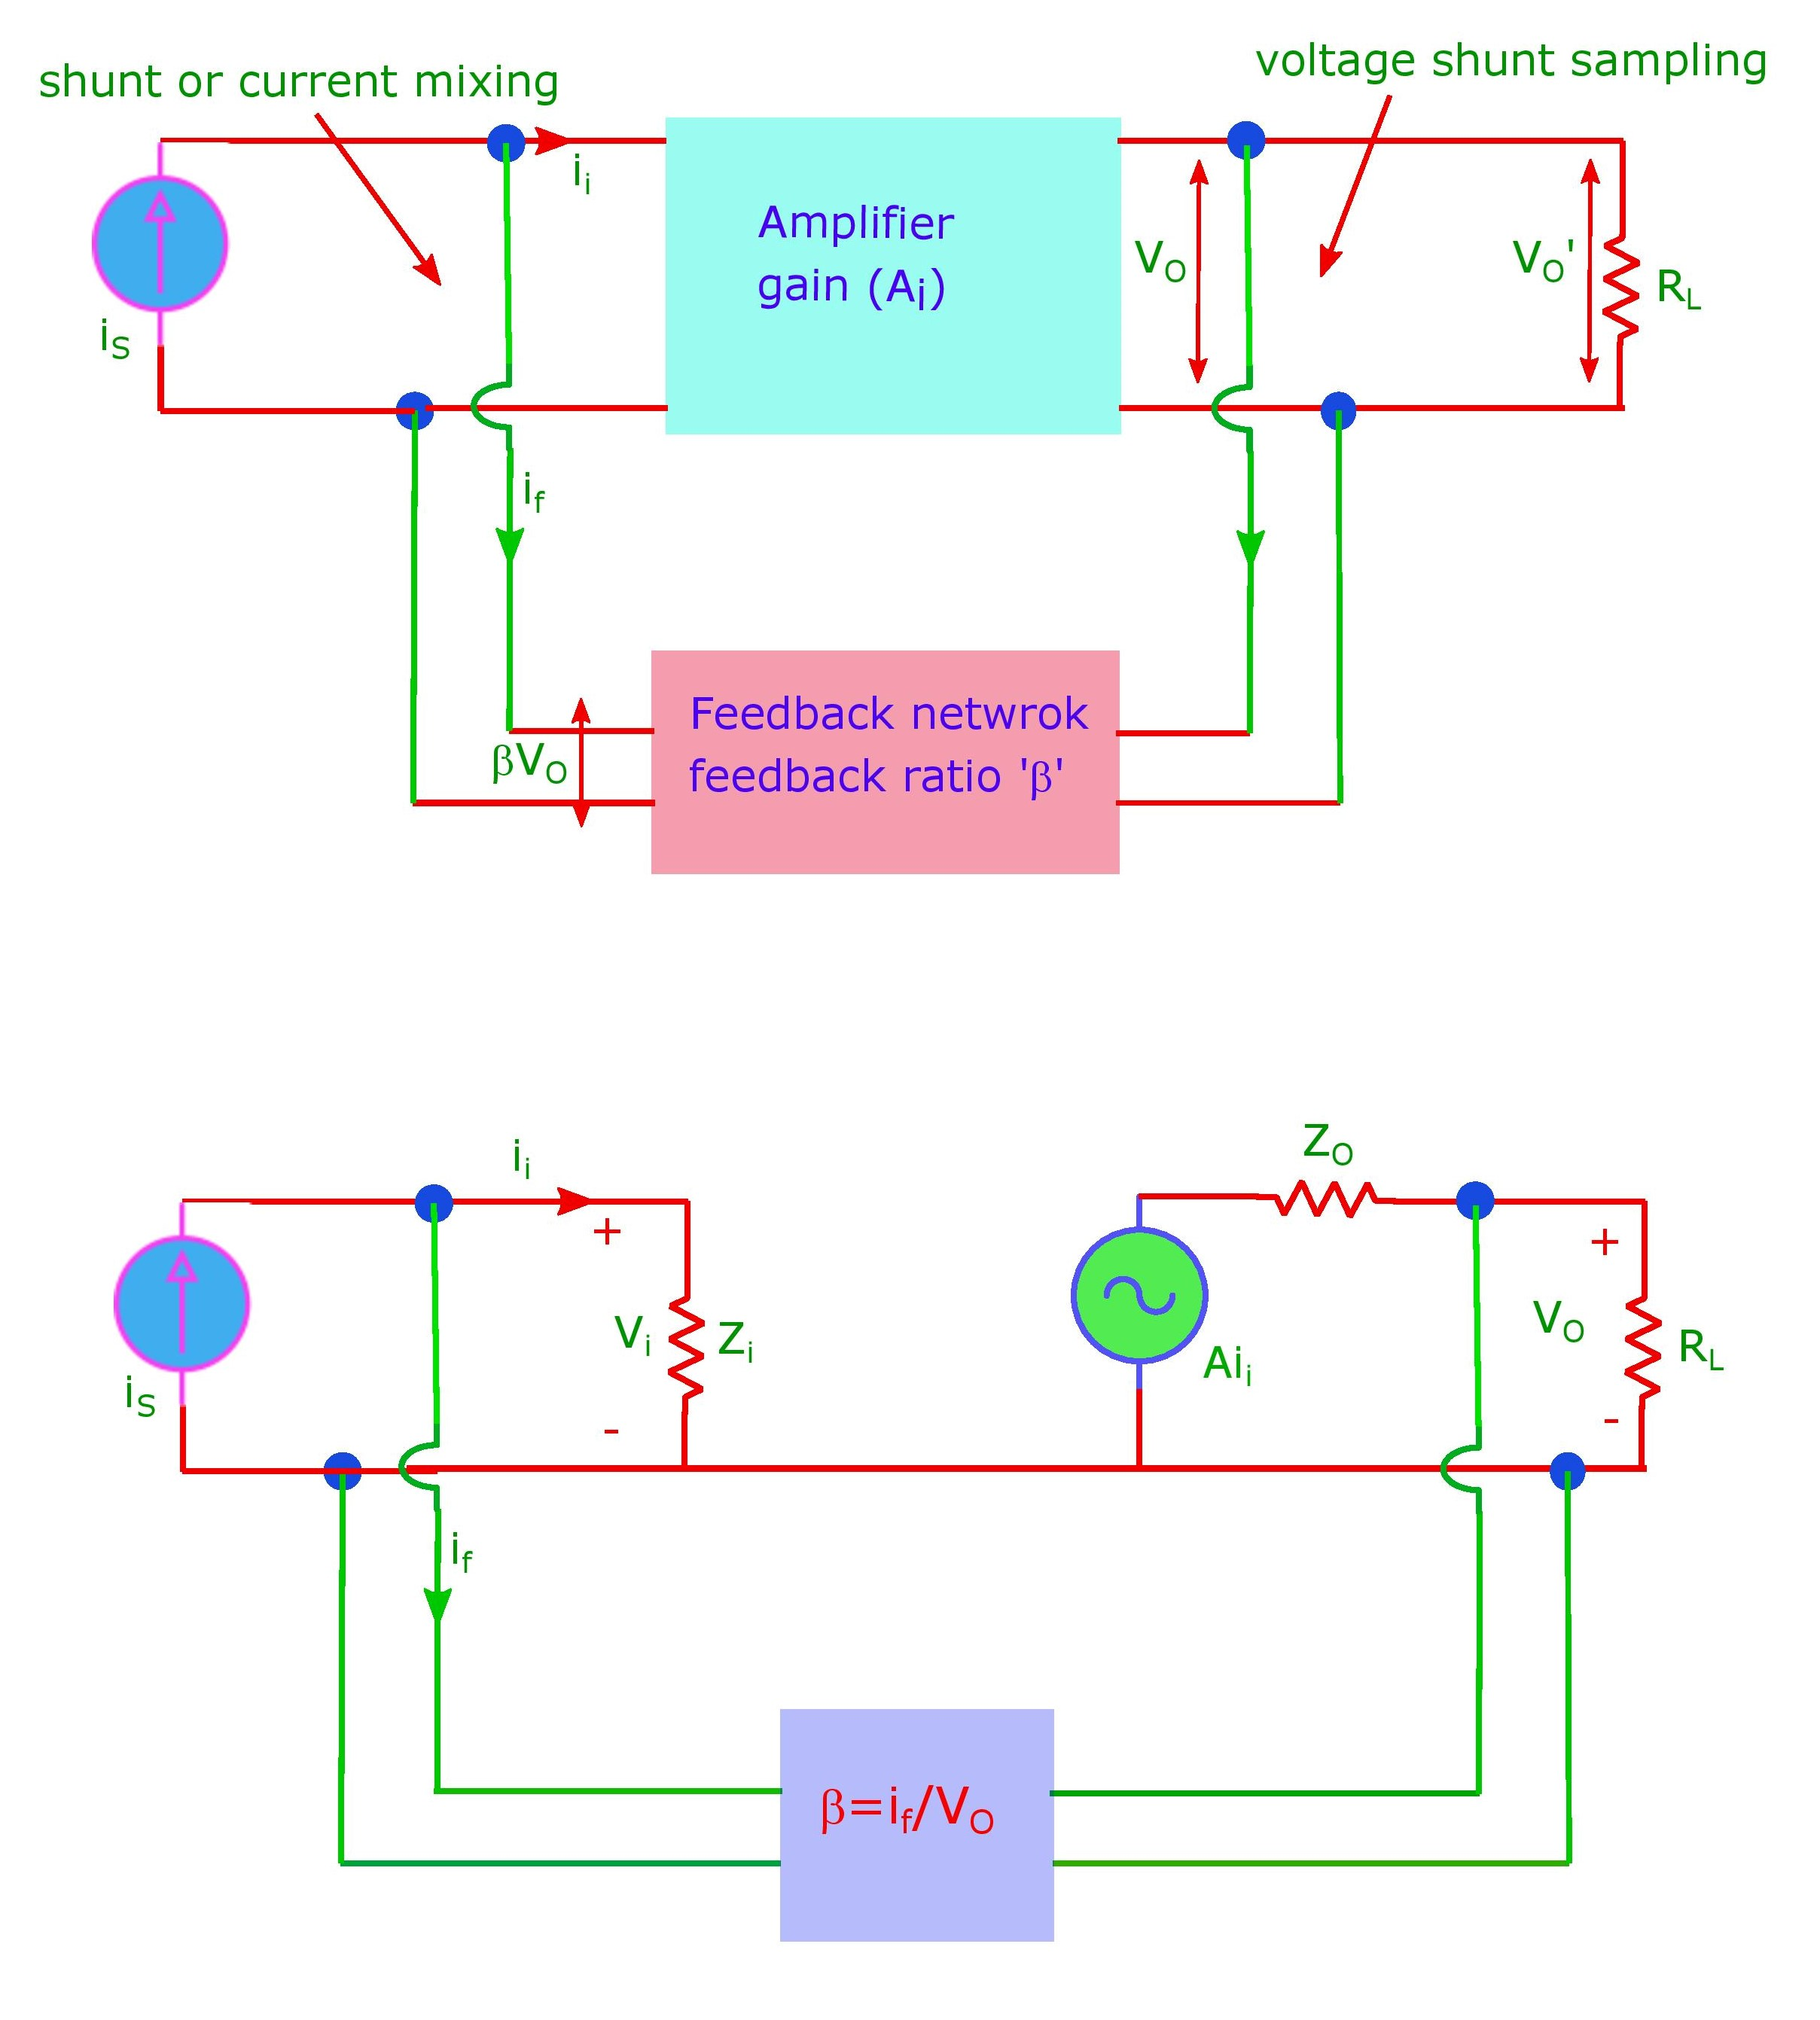 The voltage sampling current mixing type feedback amplifier.